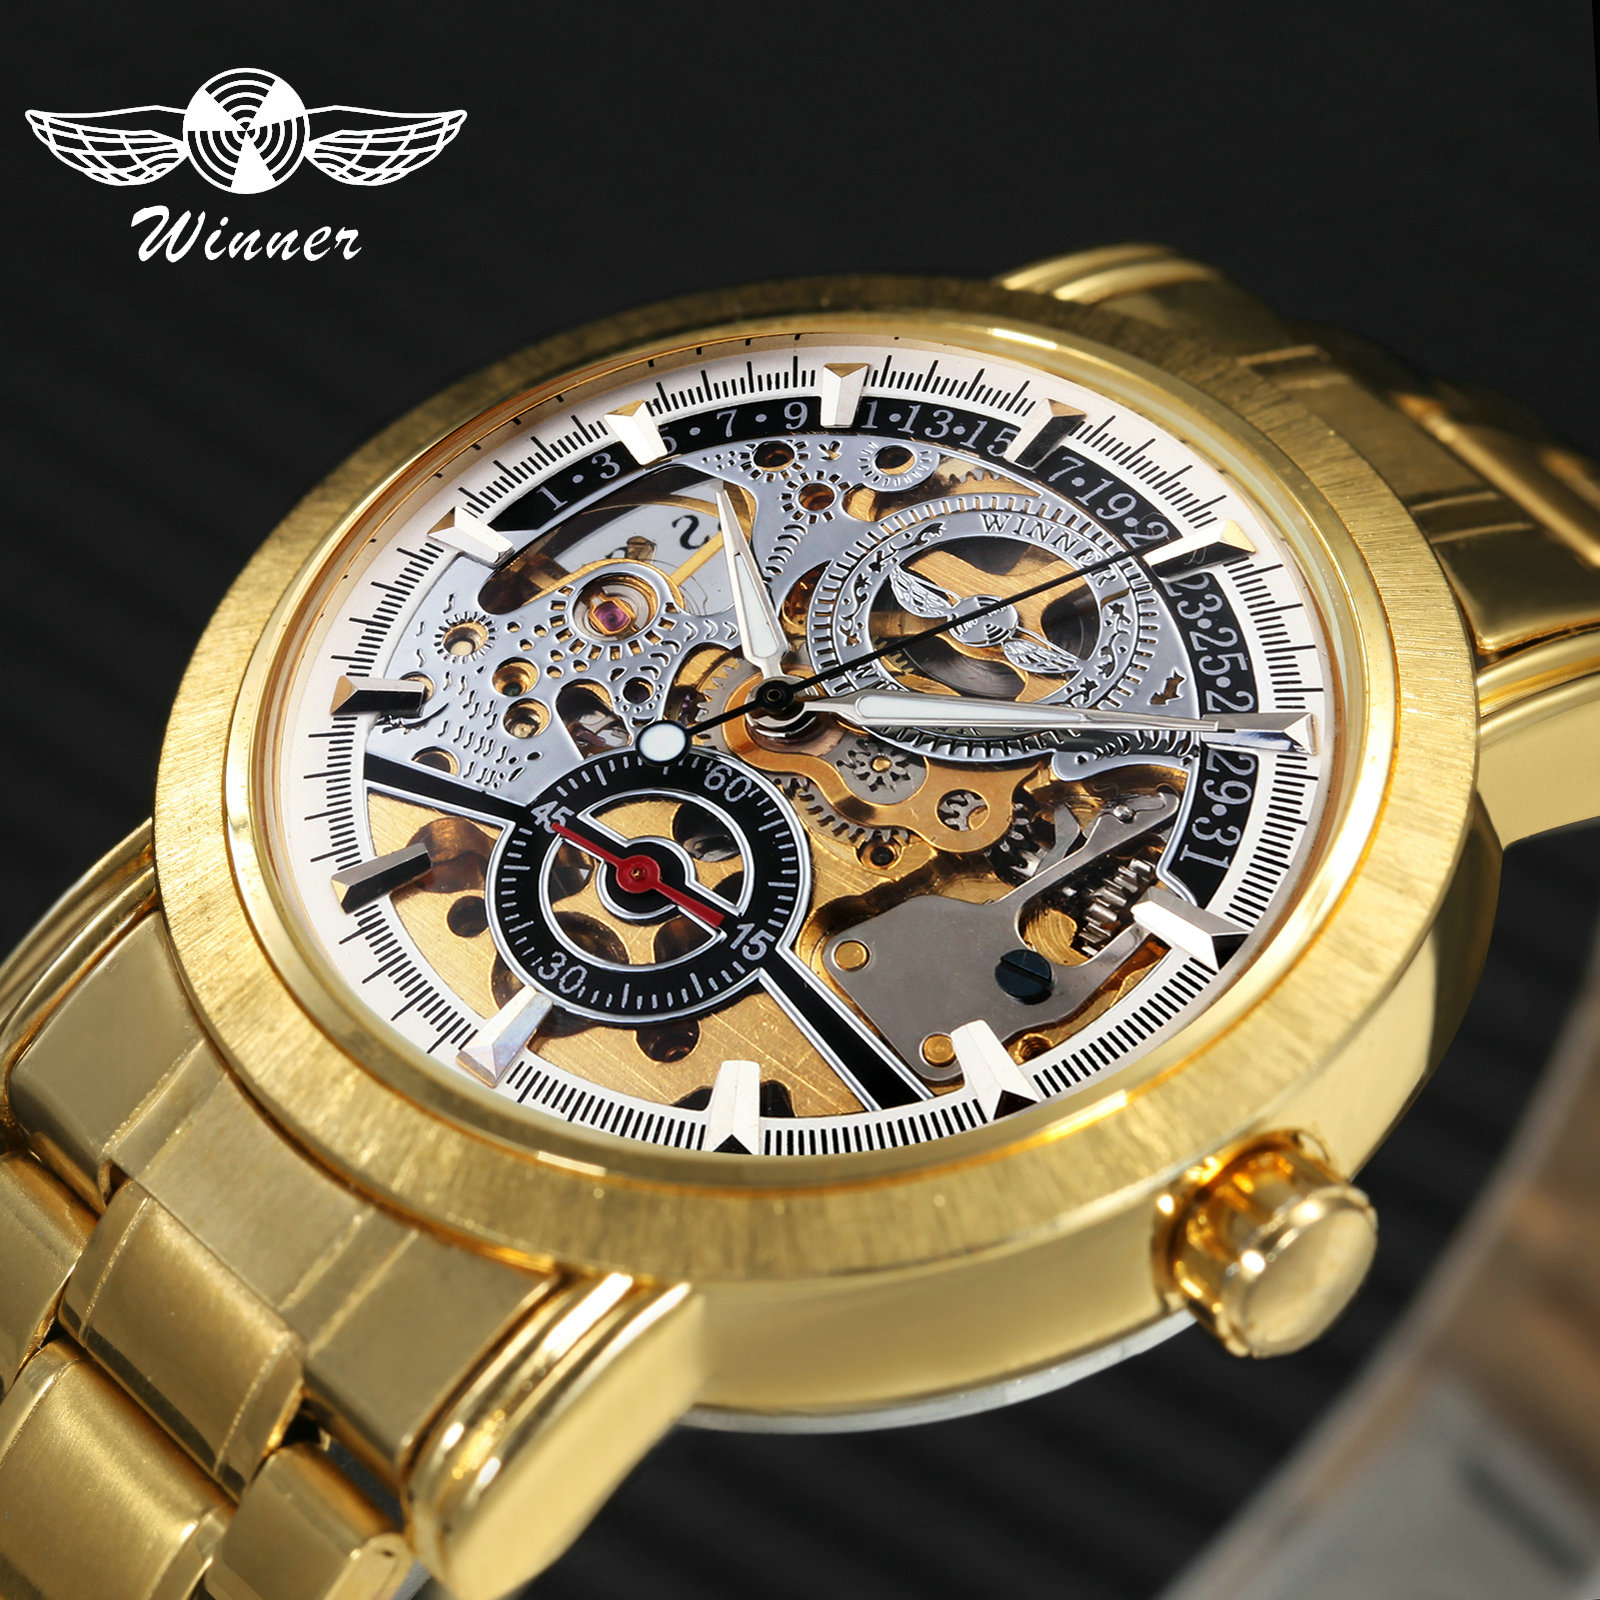 Men's Watches Bright 2019 Winner Classic Golden Skeleton Mechanical Watch Men Leather Strap Top Brand Luxury Man Business Vip Drop Shipping Wholesale